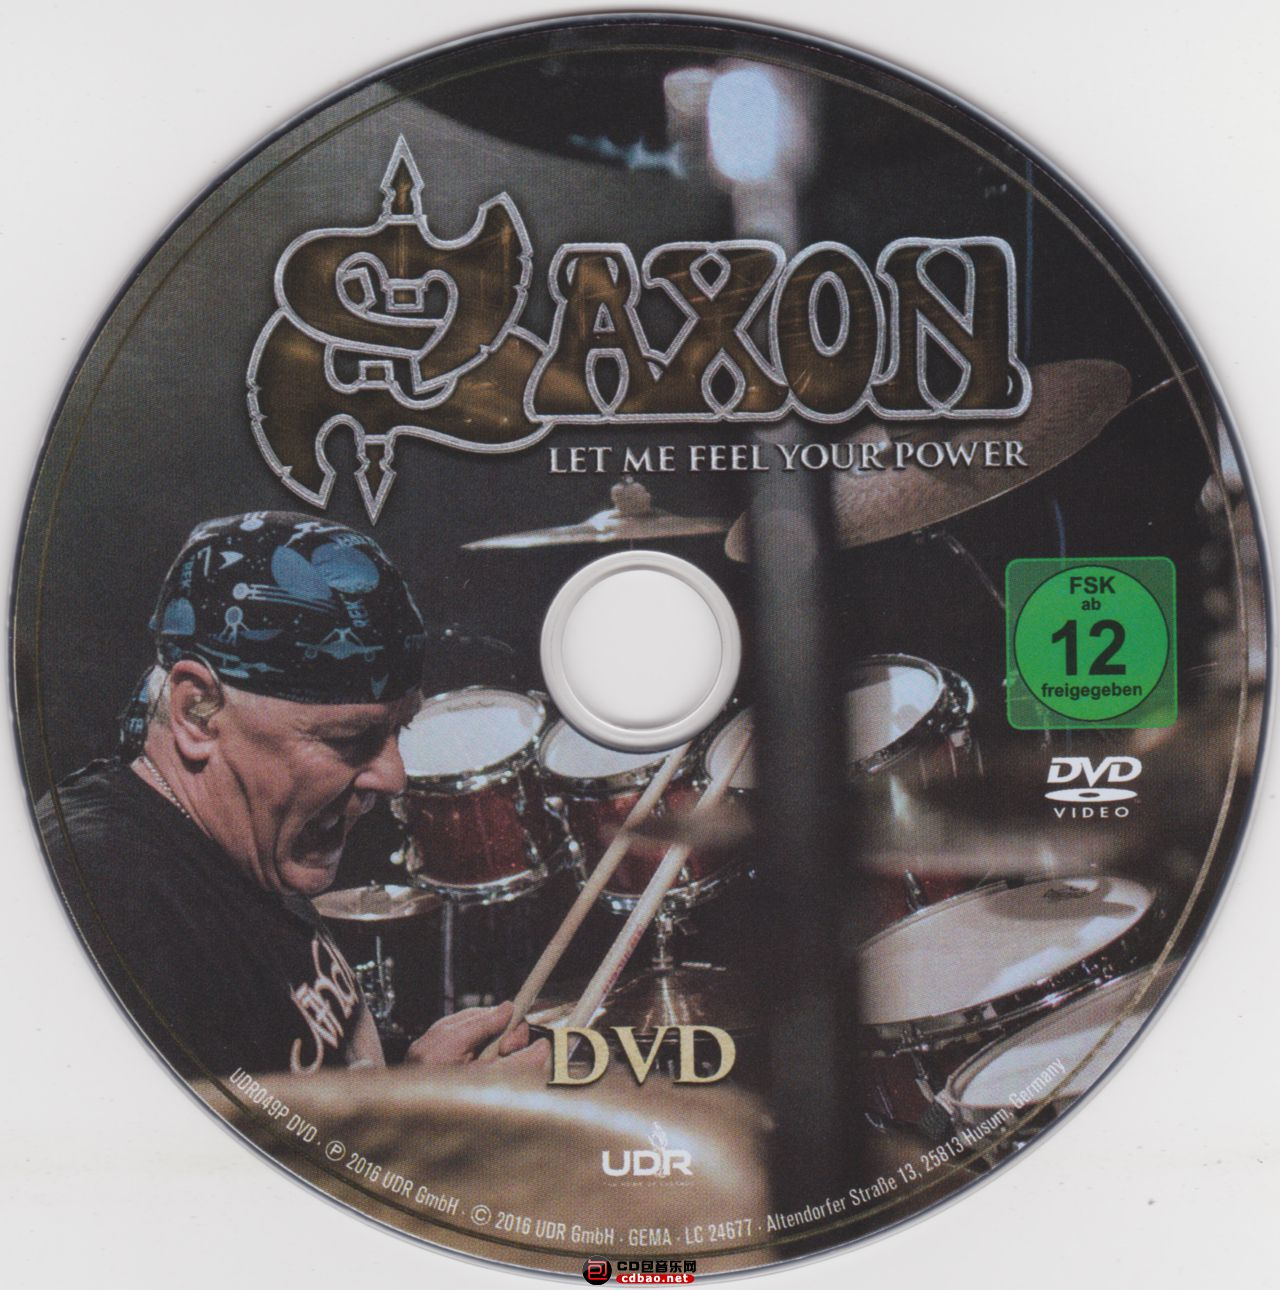 Saxon-2016-Let Me Feel Your Power-DVD.jpg